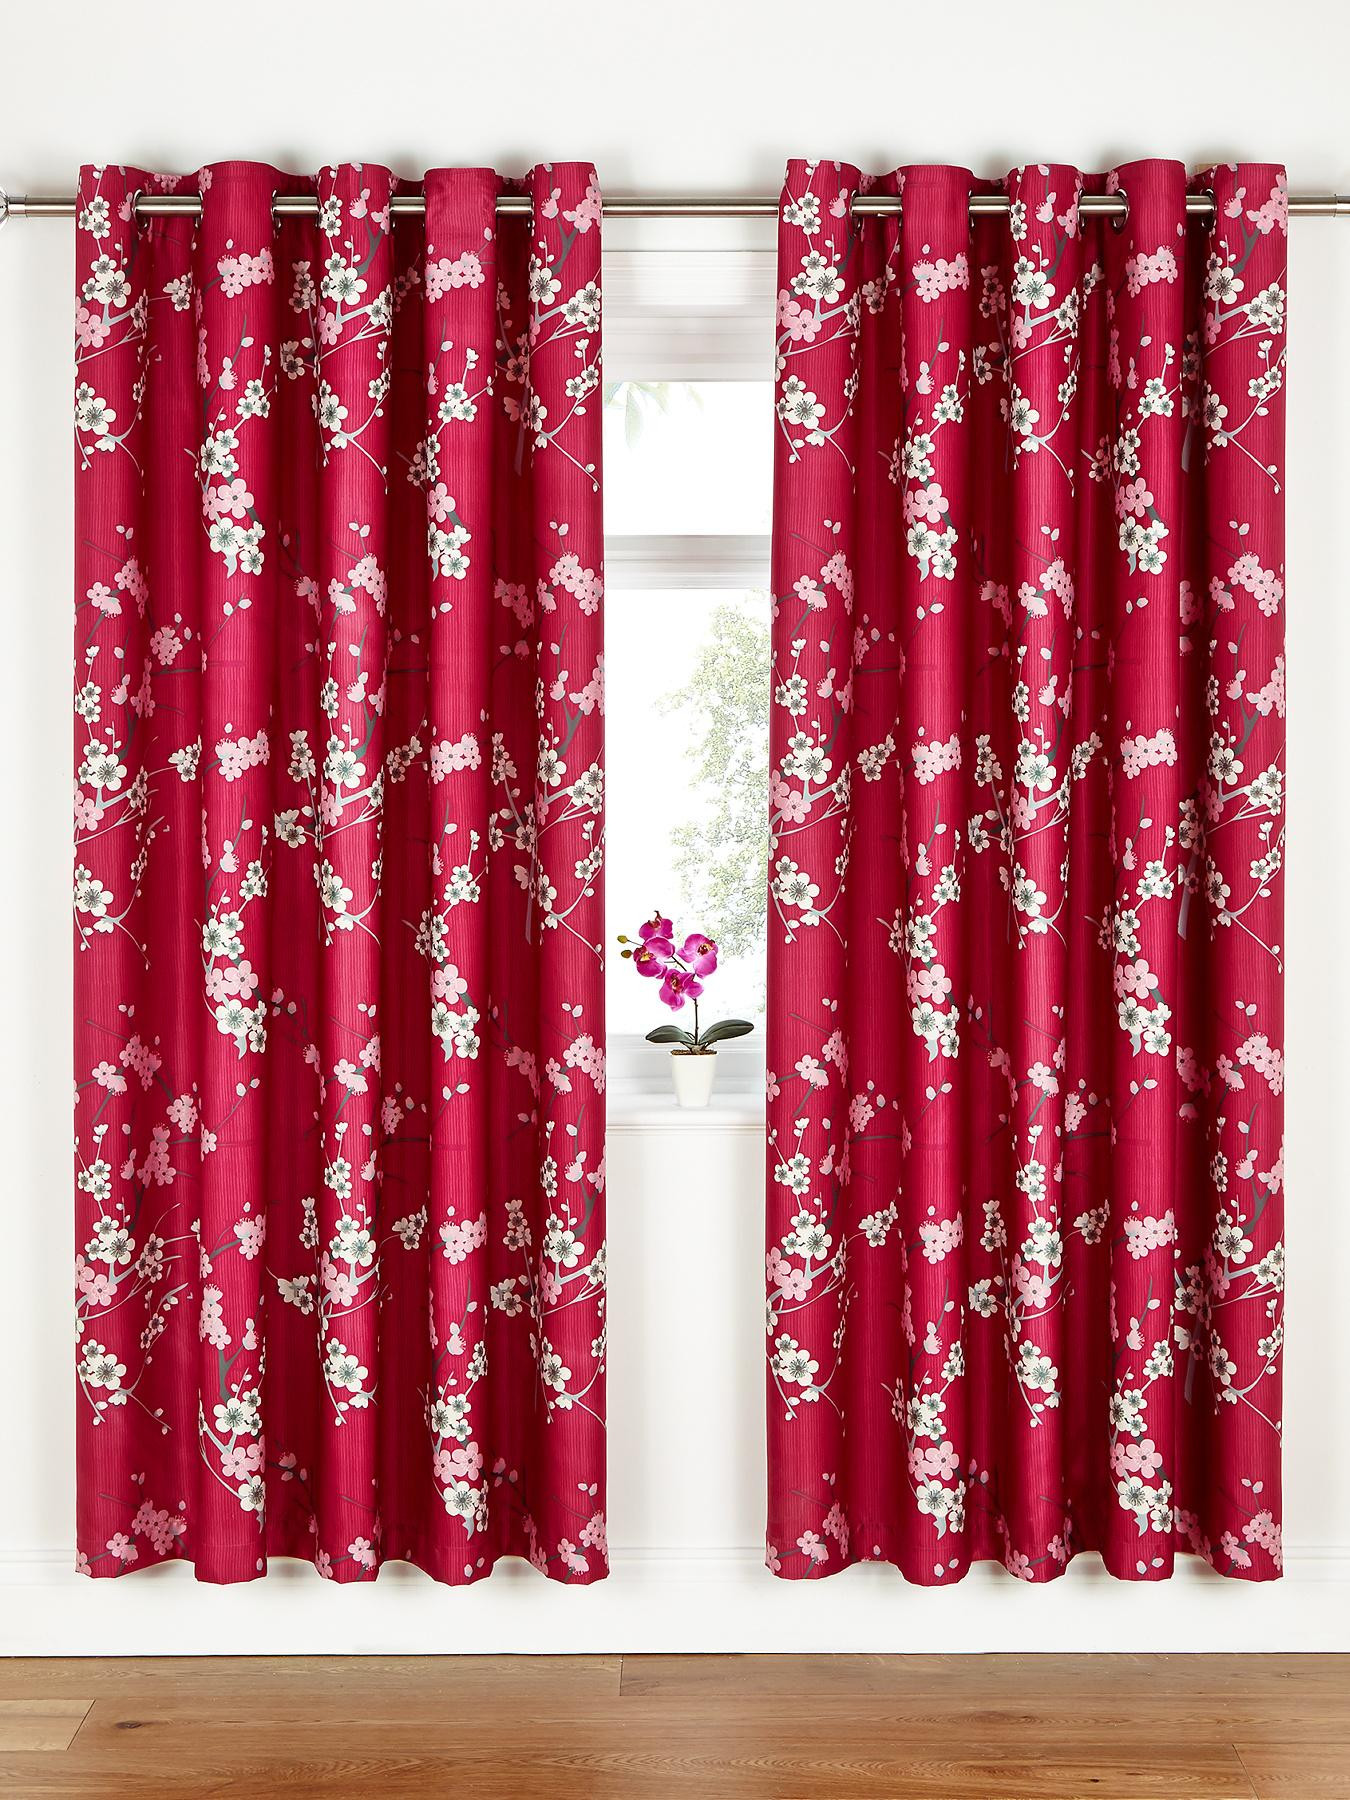 Buy cheap Cotton eyelet curtains - compare Curtains & Blinds prices ...